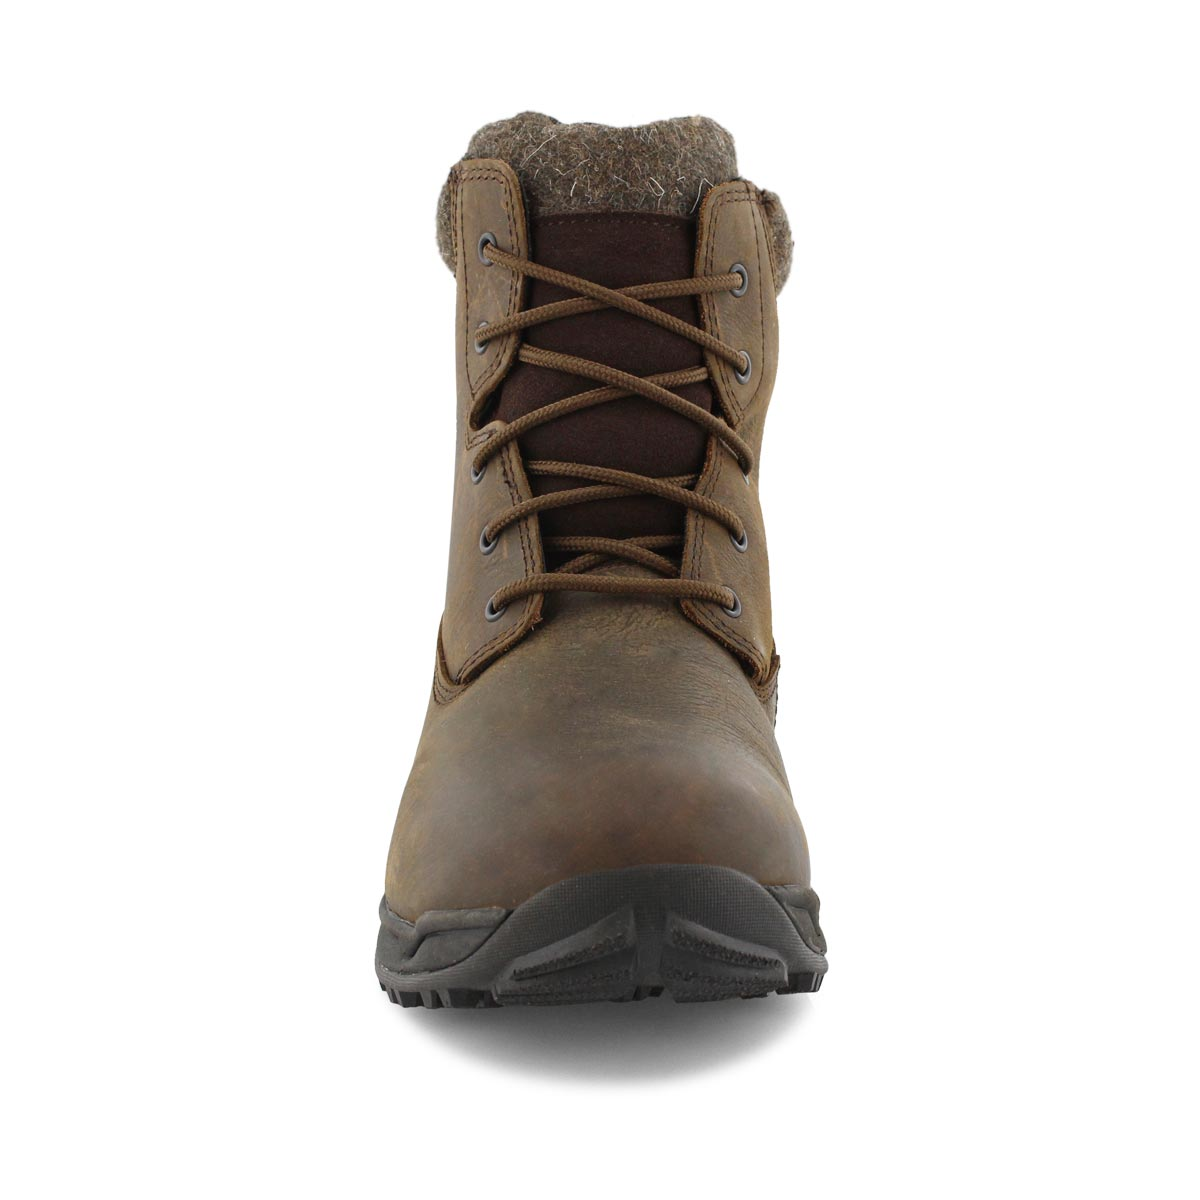 Mns Truro brown wp lace up winter boot